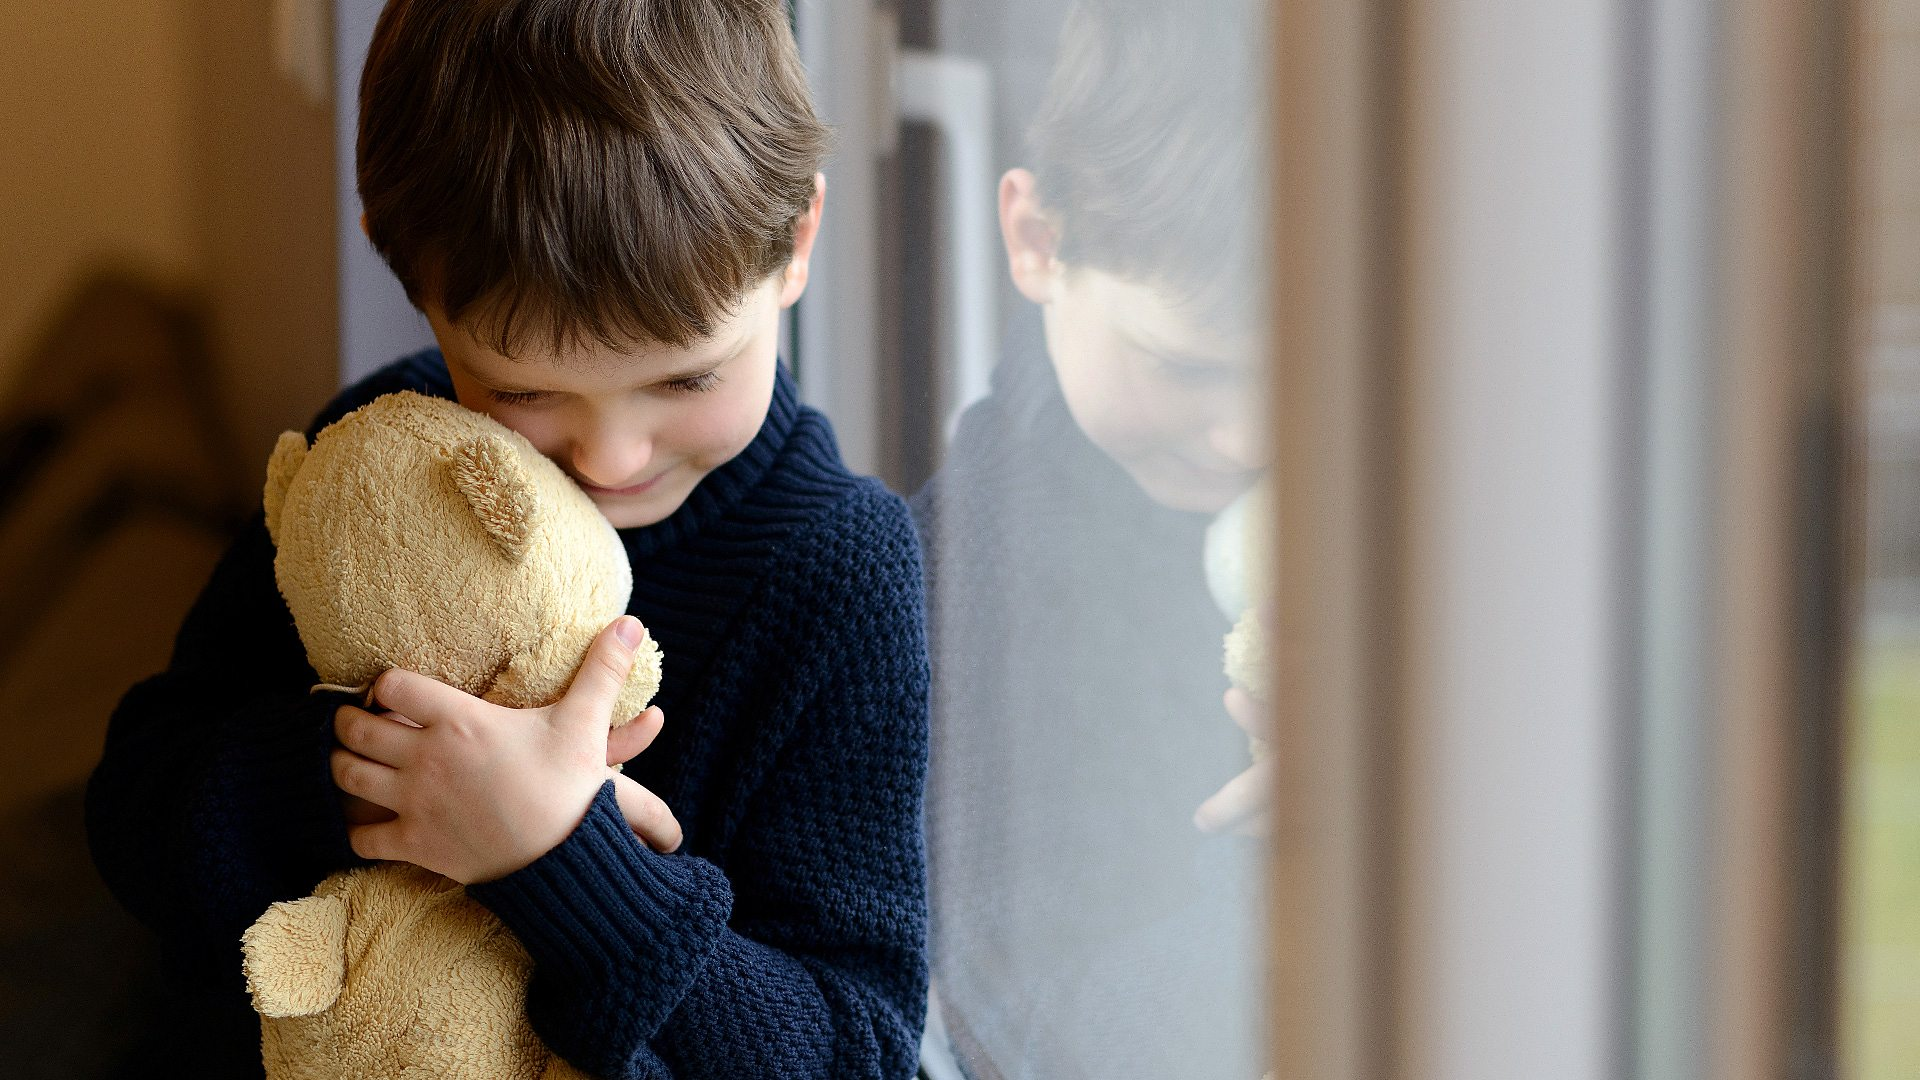 My Sons Anxiety Is Making Him Miss Out >> Bbc Radio 4 All In The Mind Anxiety And Children First